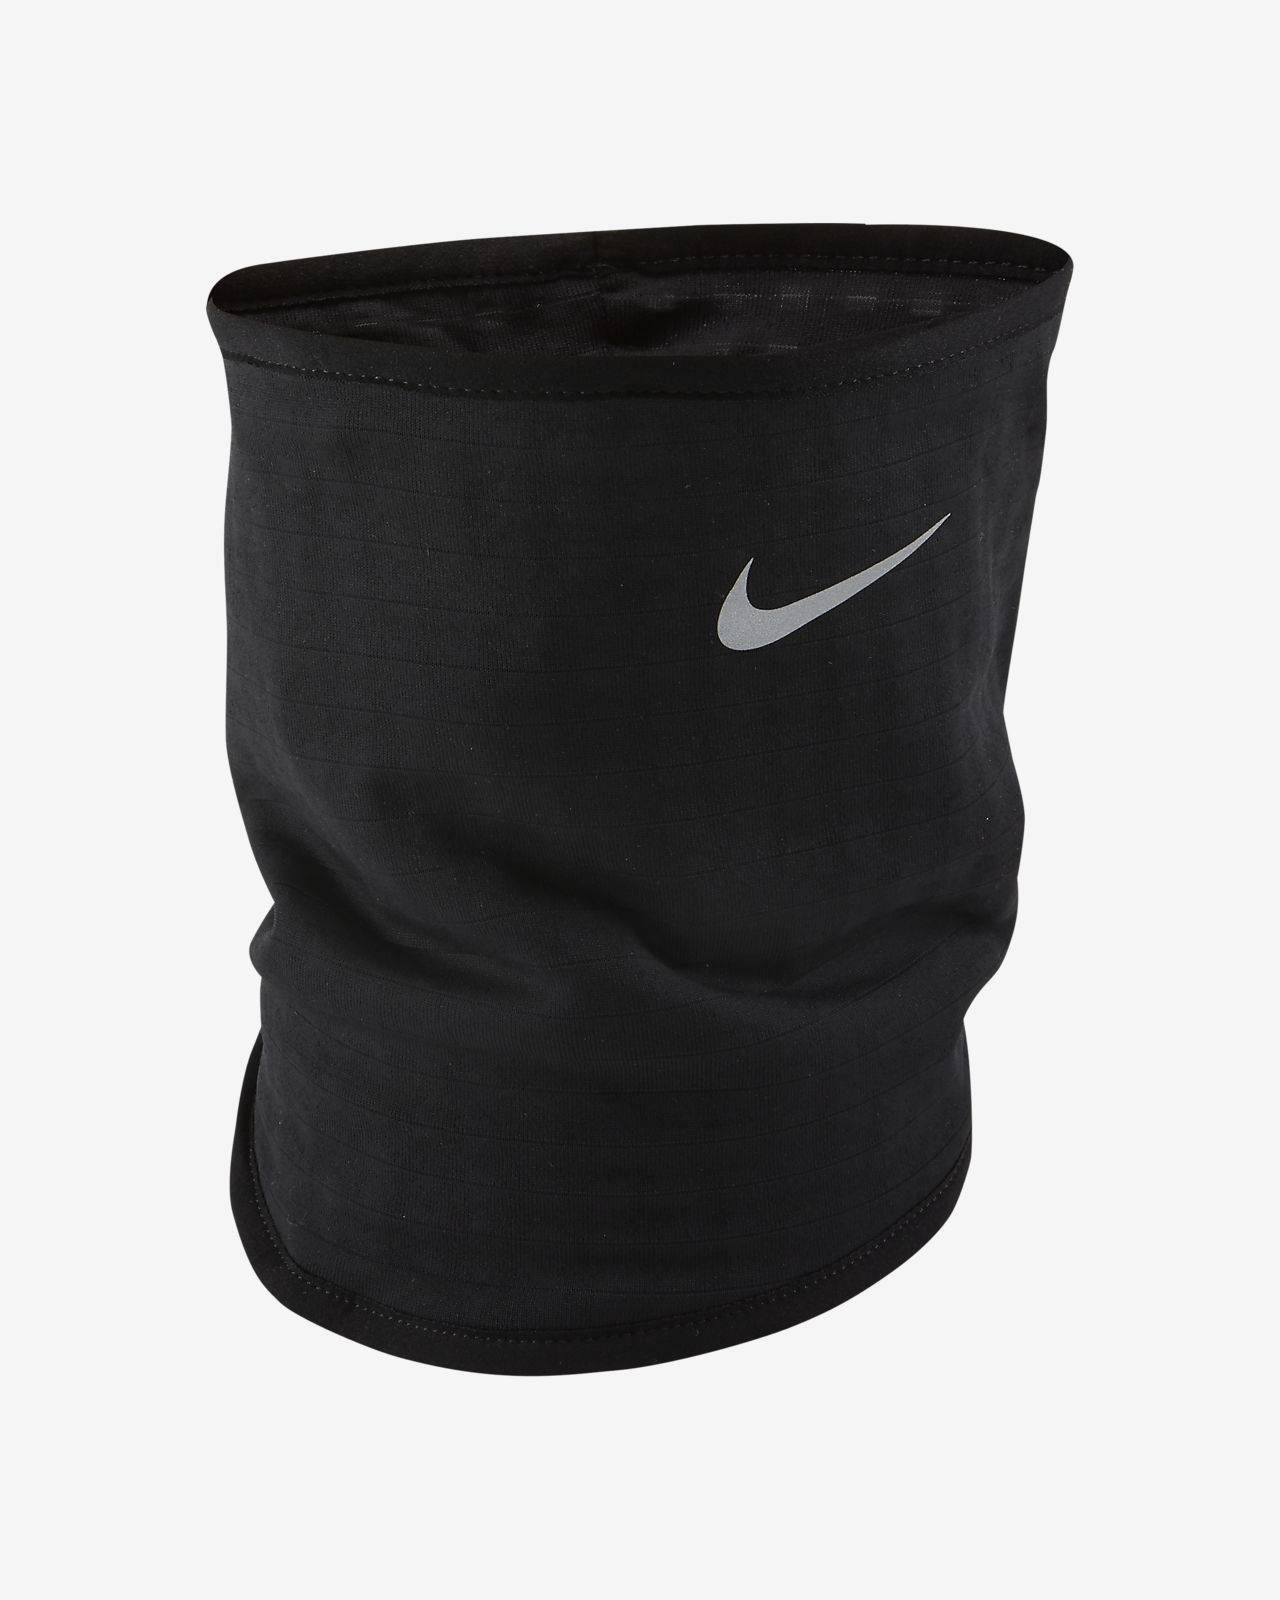 Nike Therma Sphere Neck Warmer 3.0